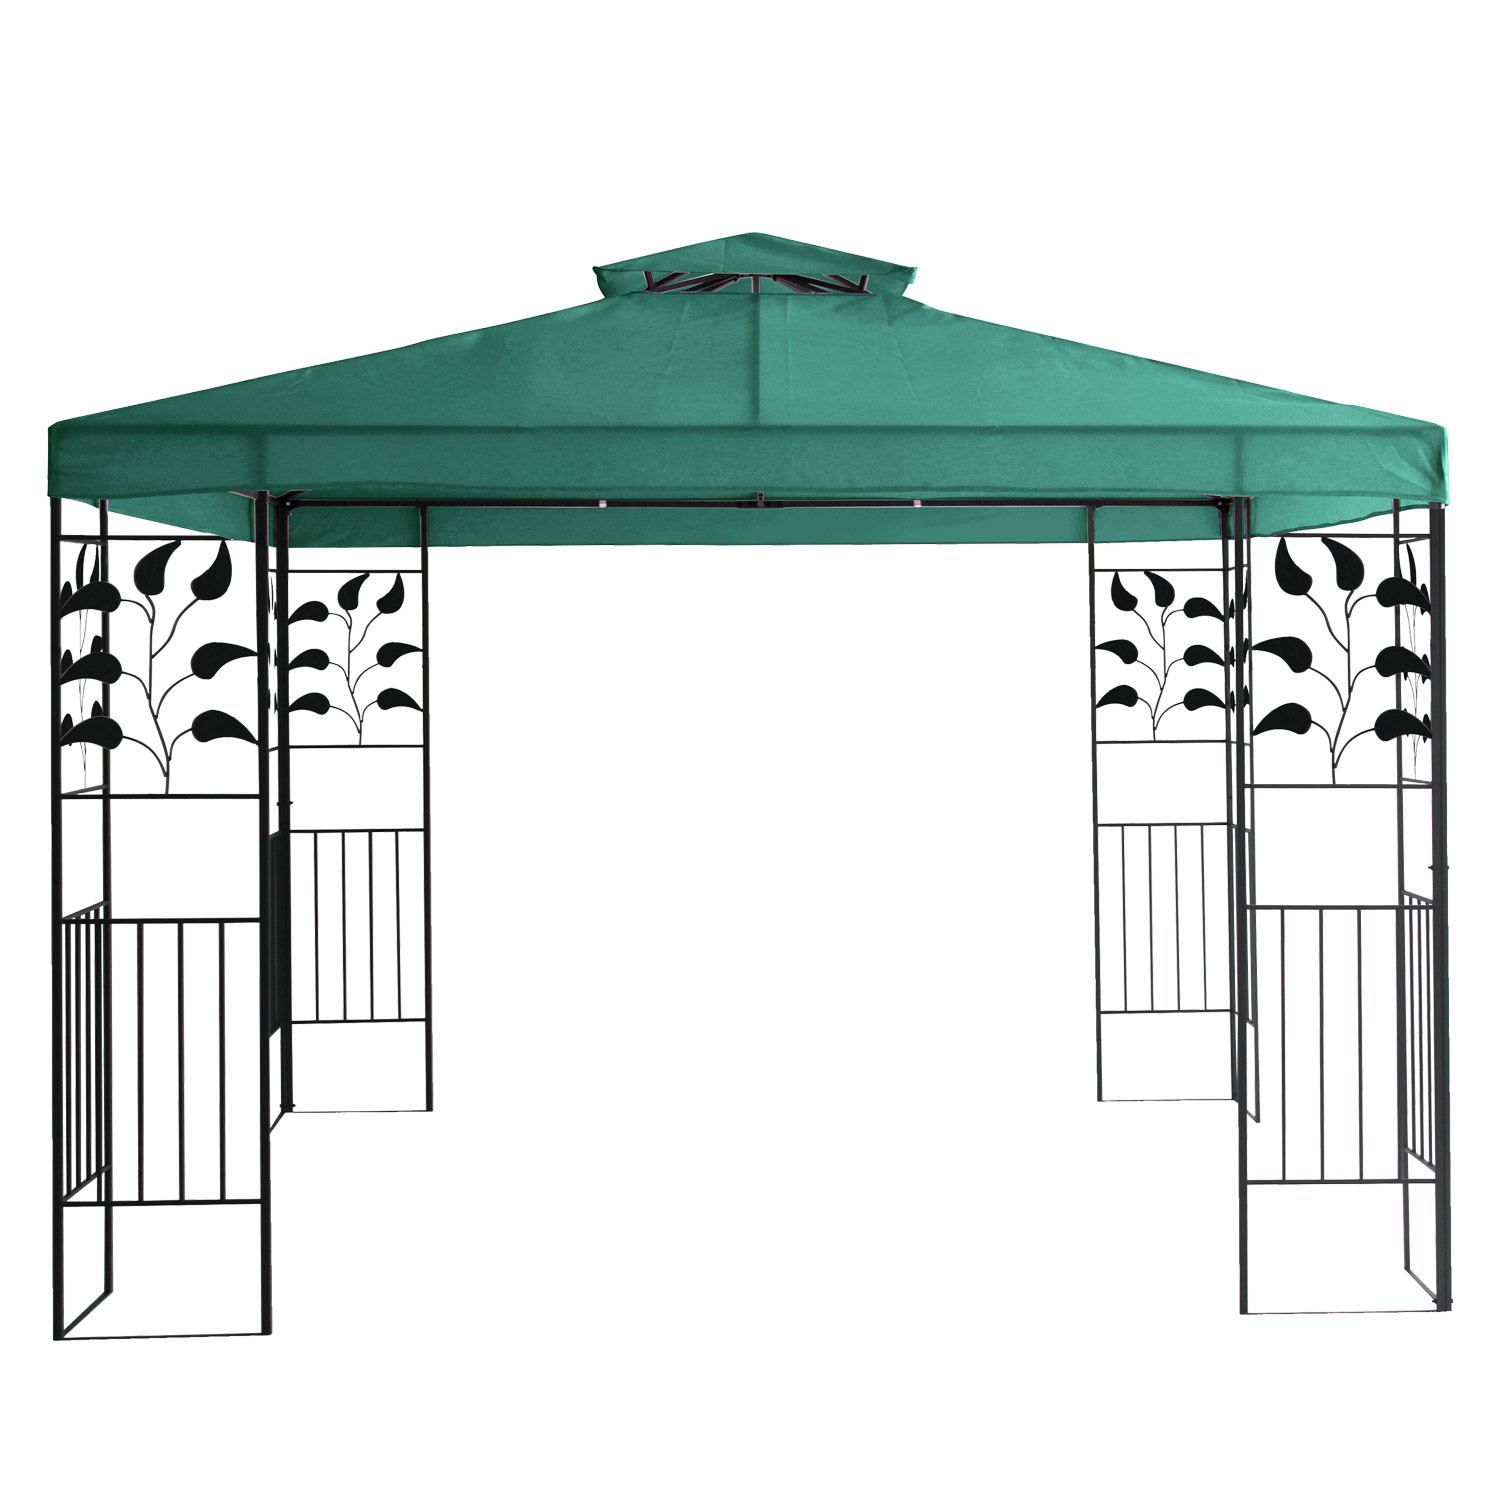 pavillon 3x3m metall gartenpavillon festzelt dach zelt garten wasserfest gr n ebay. Black Bedroom Furniture Sets. Home Design Ideas